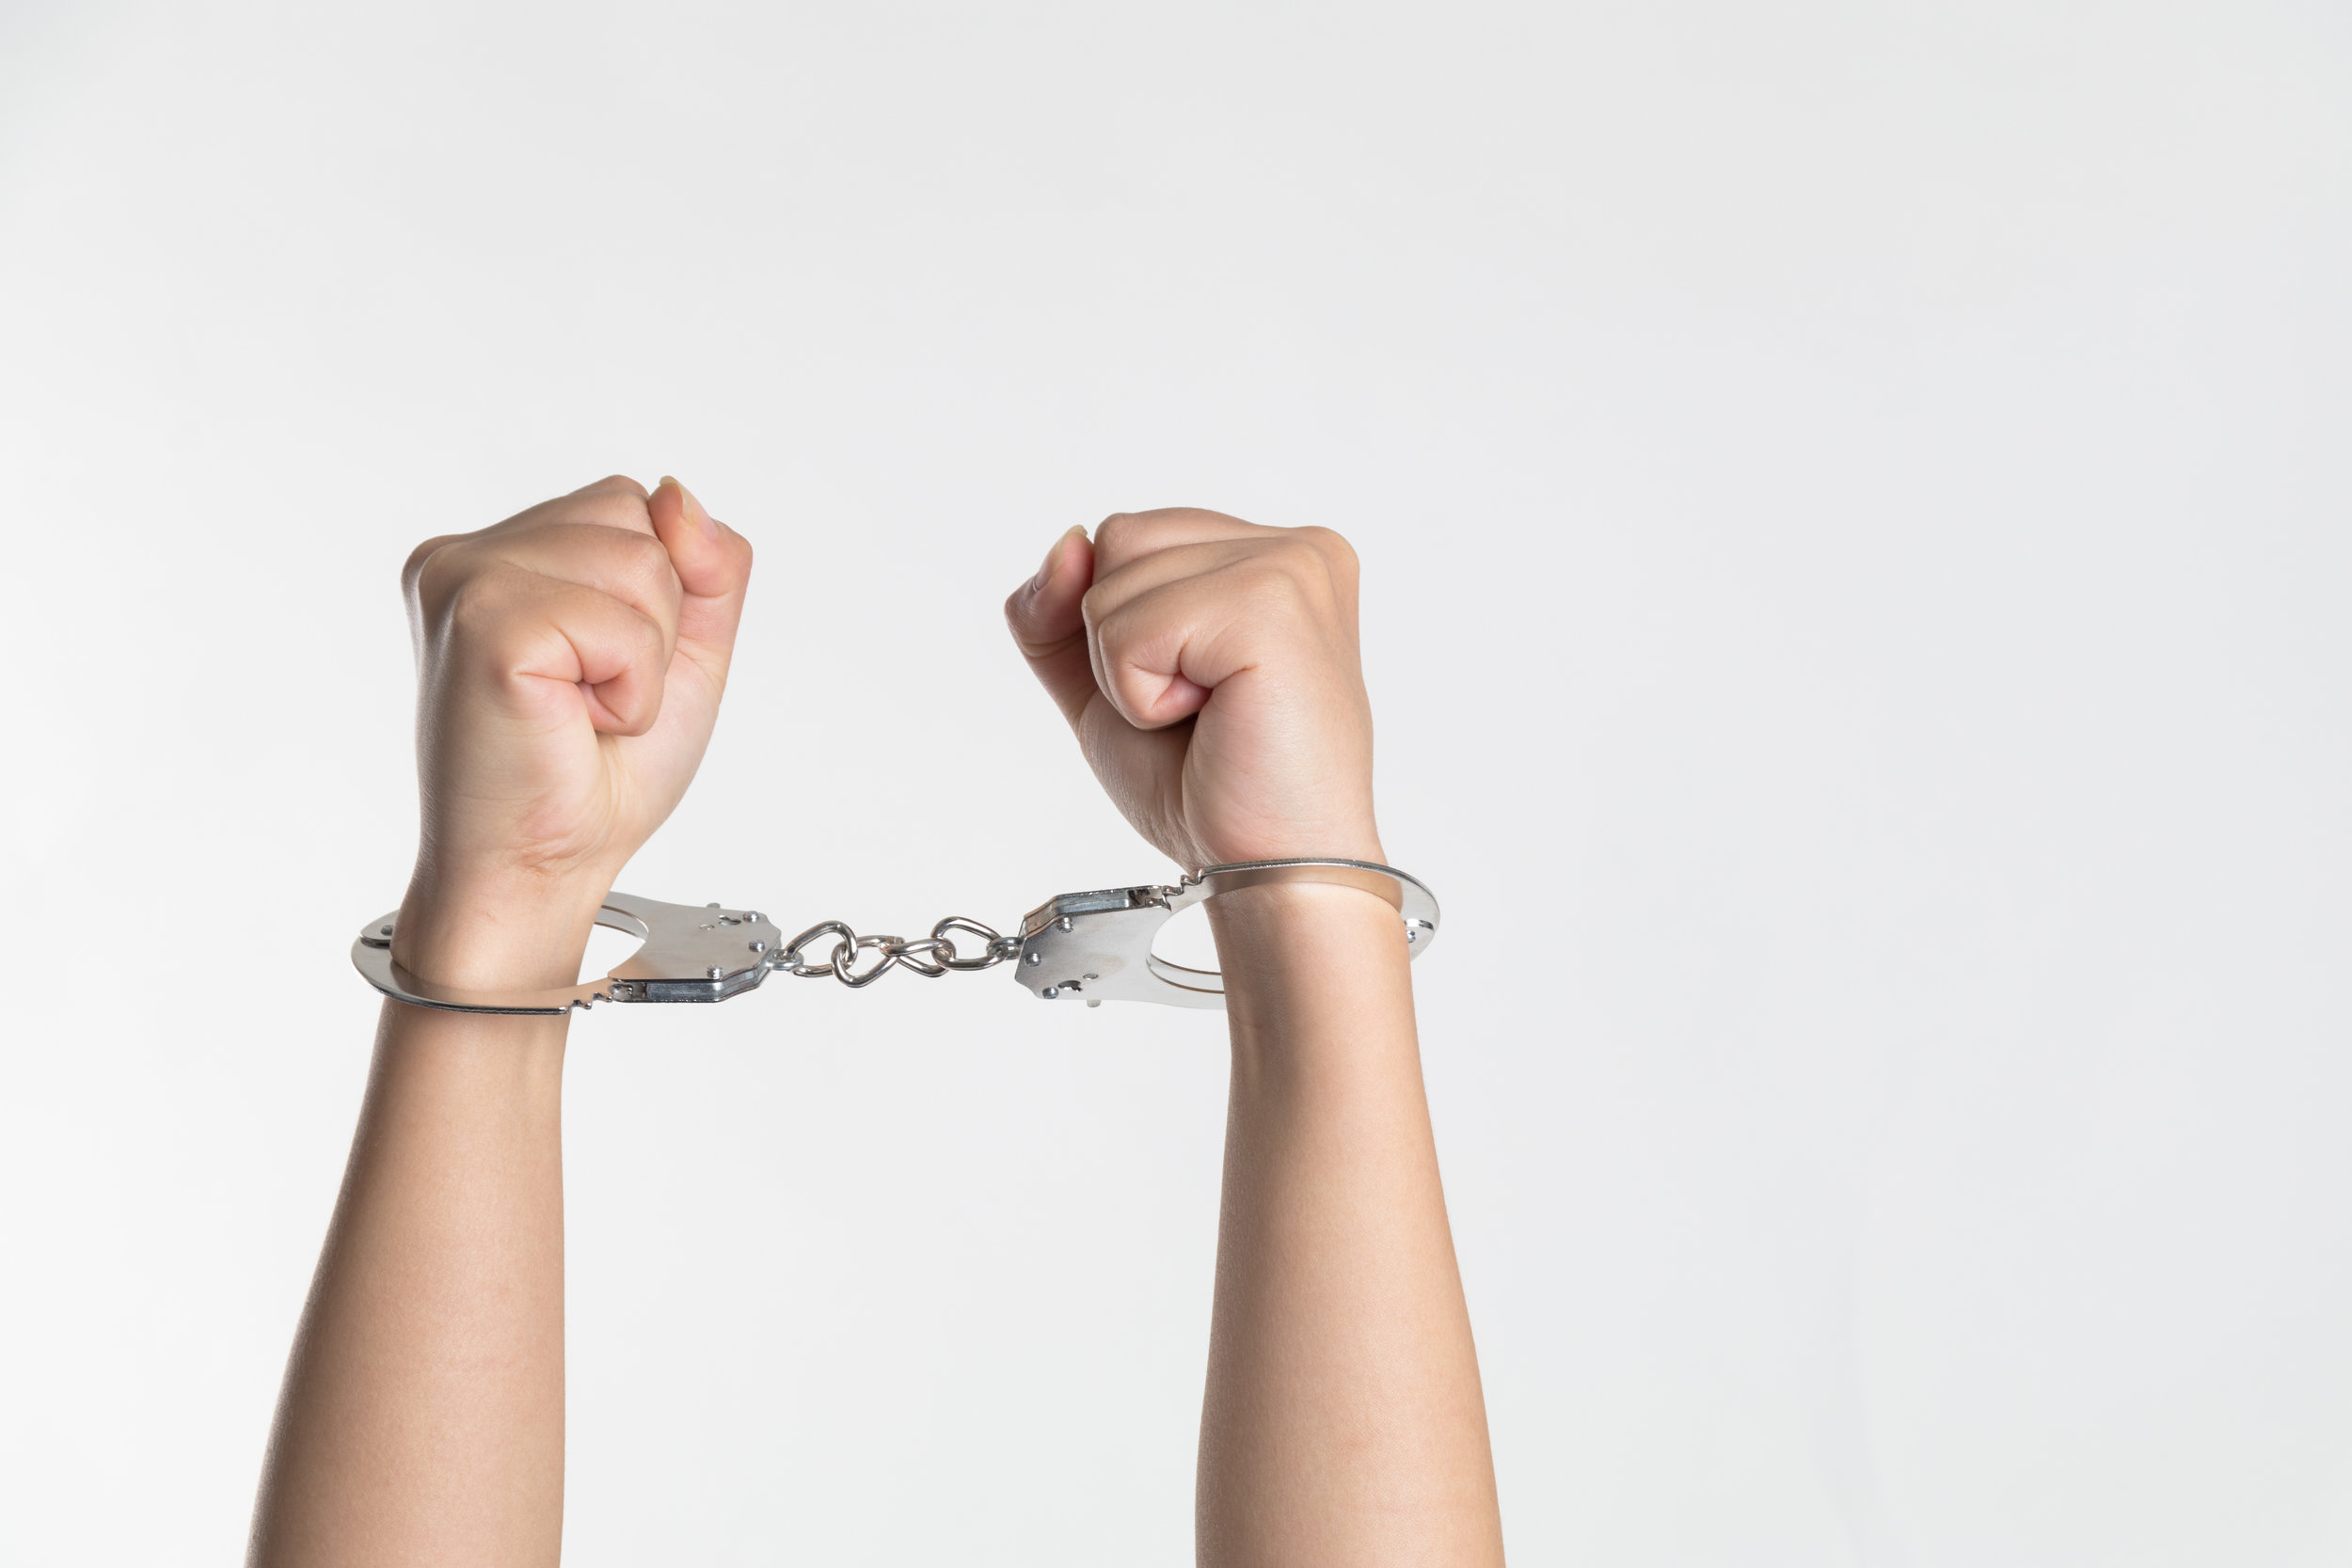 EVERY CASE IS DEFENSIBLE. - LEARN MORE ABOUT OUR CRIMINAL DEFENSE PRACTICE HERE.